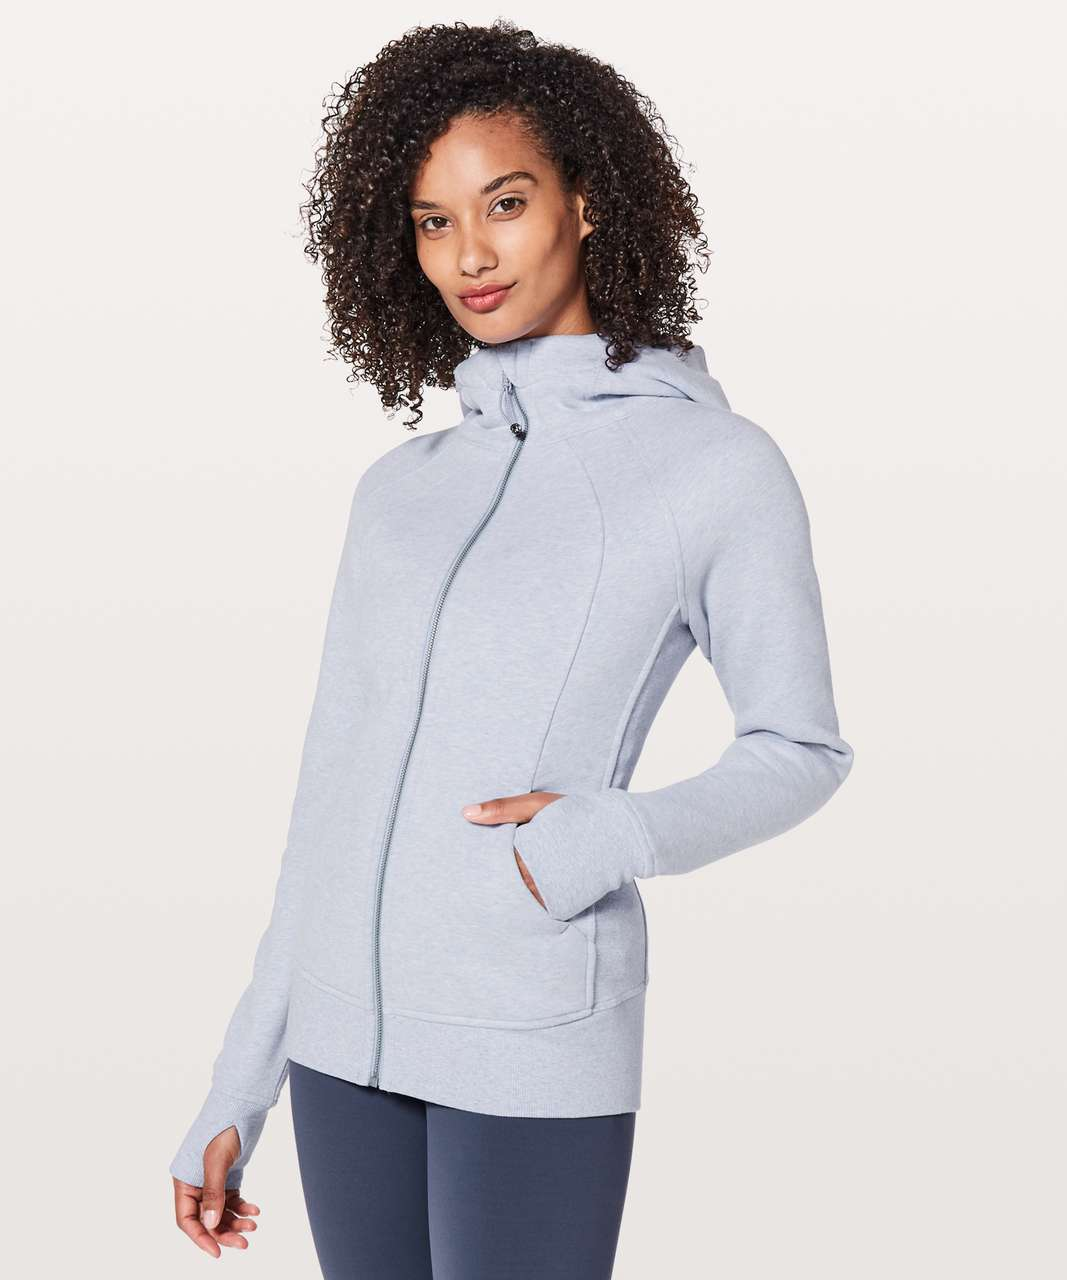 Lululemon Scuba Hoodie *Light Cotton Fleece - Heathered Berry Mist / Berry Mist